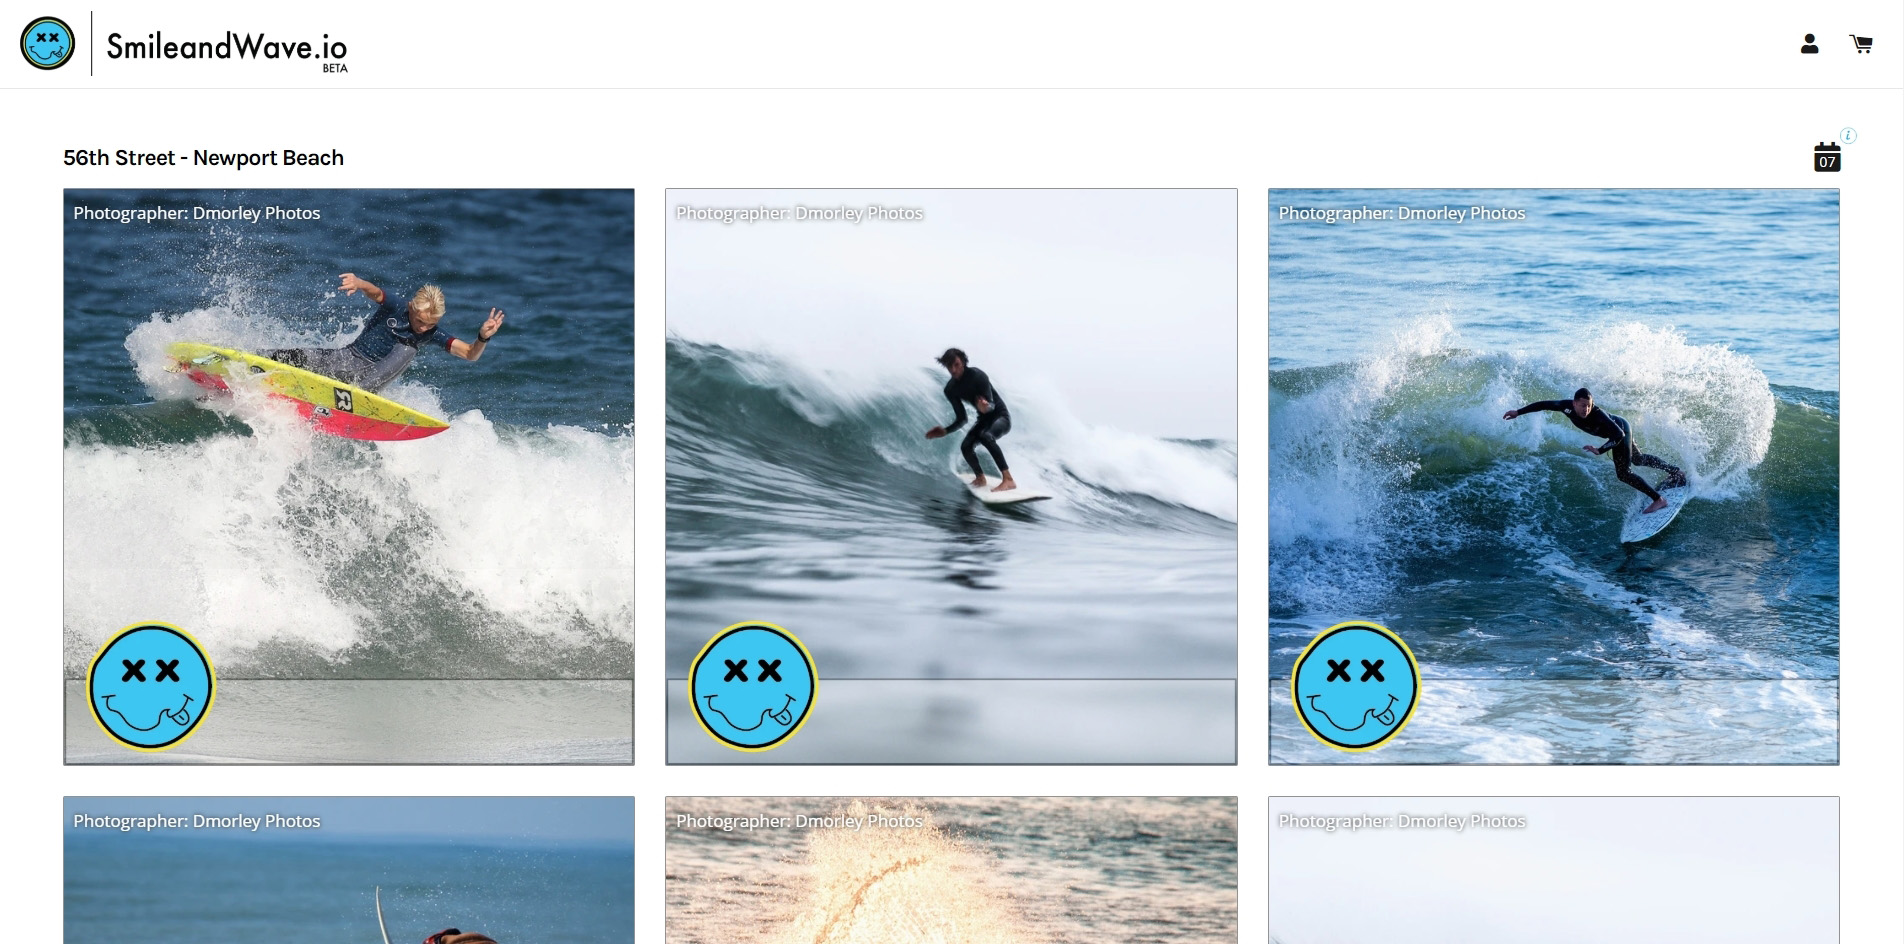 Smile and Wave - Surfing Dashboard